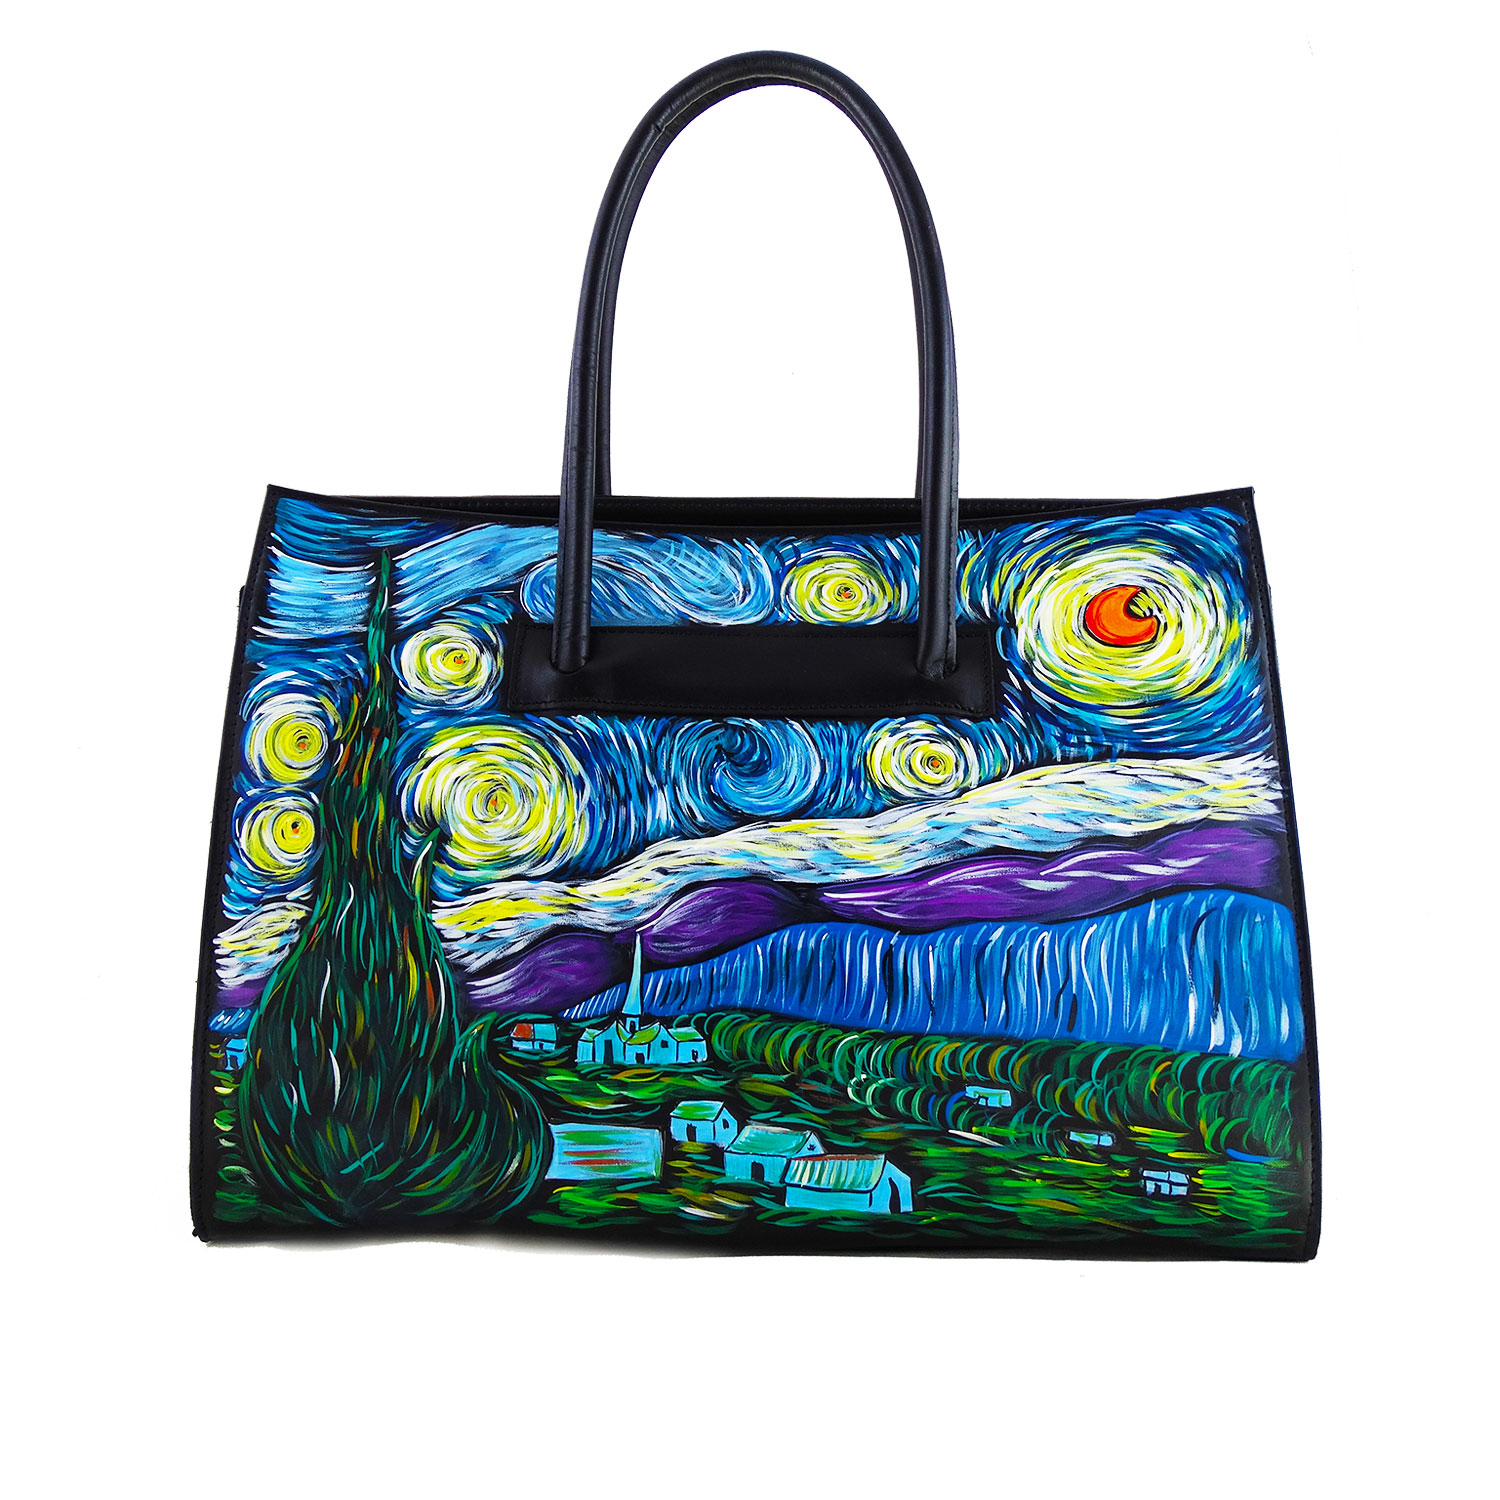 Hand painted bag – The starry night by Van Gogh